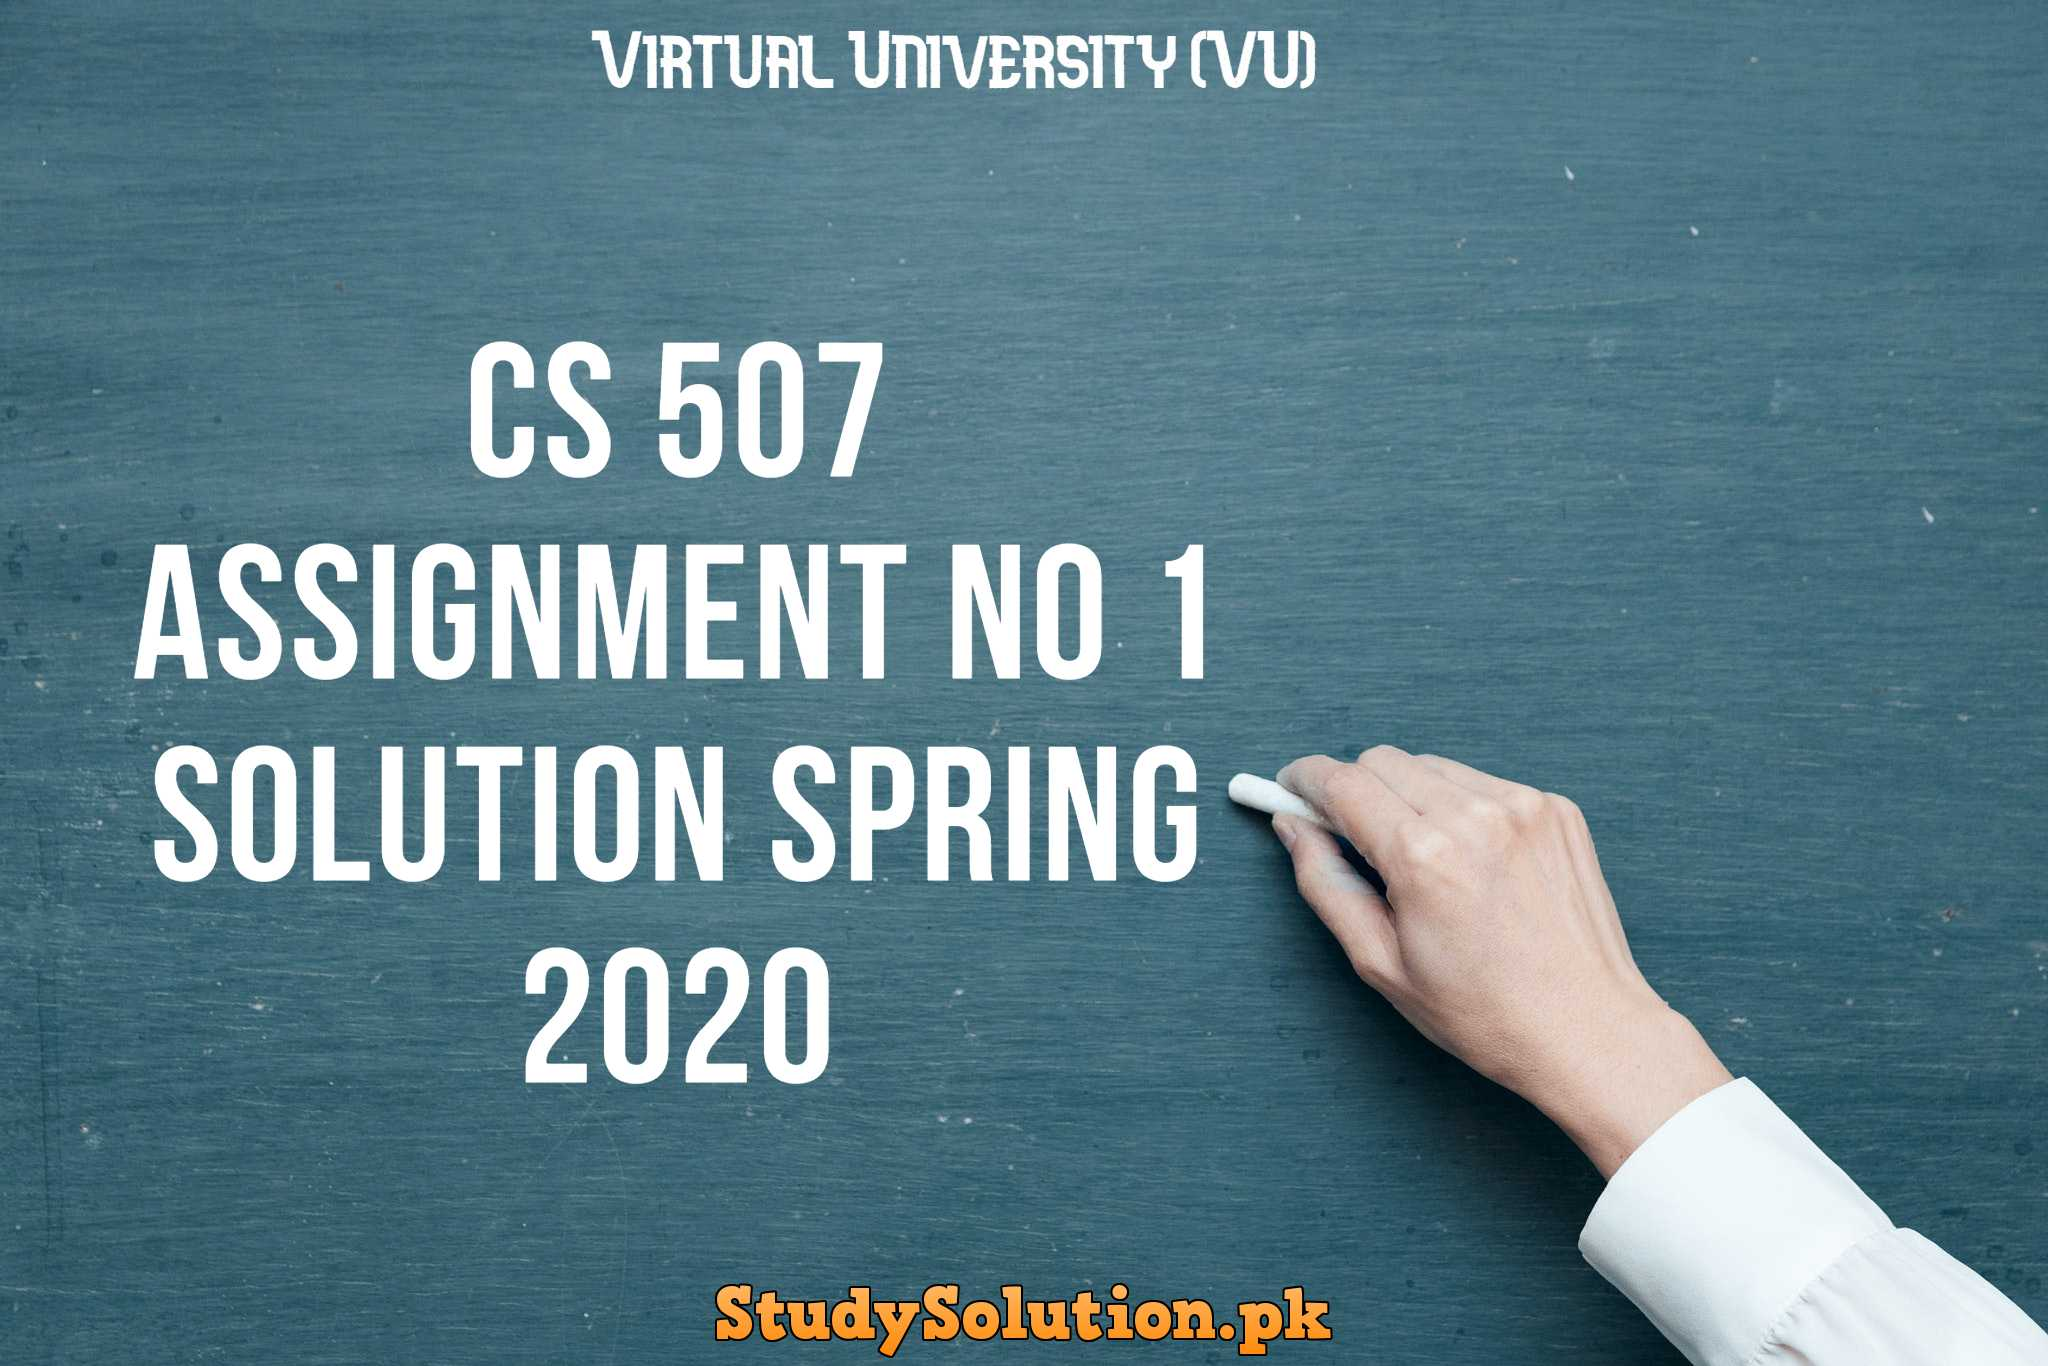 CS 507 Assignment No 1 Solution Spring 2020